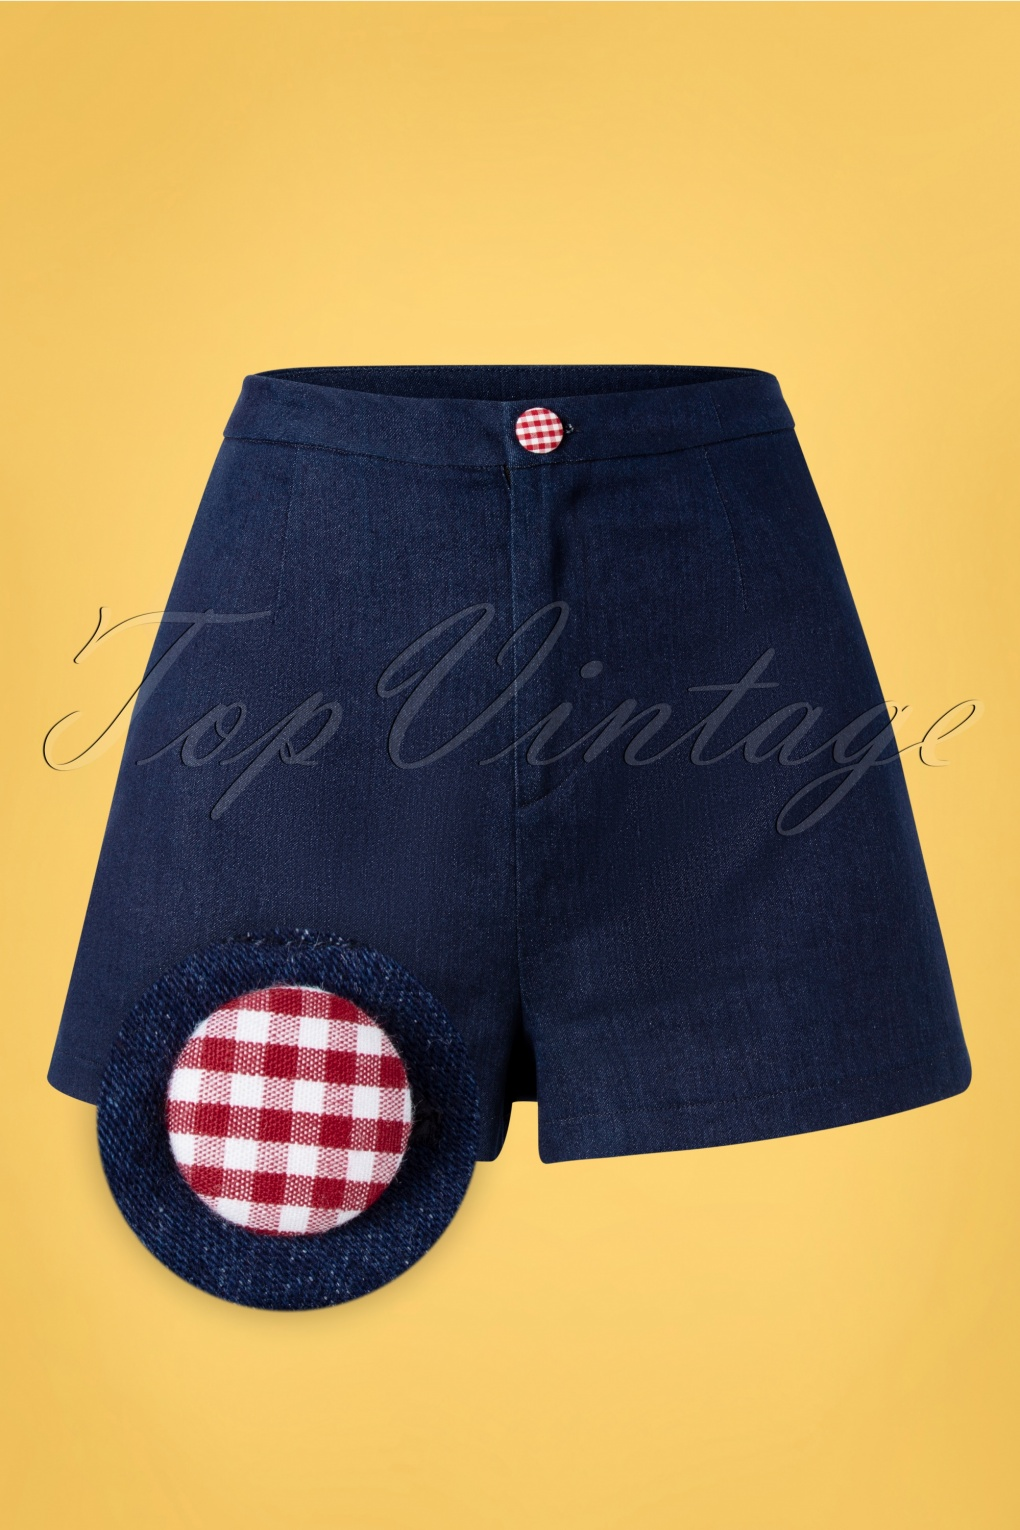 1950s Pinup Shorts, Retro Shorts 50s Diner Days Shorts in Dark Blue £23.10 AT vintagedancer.com